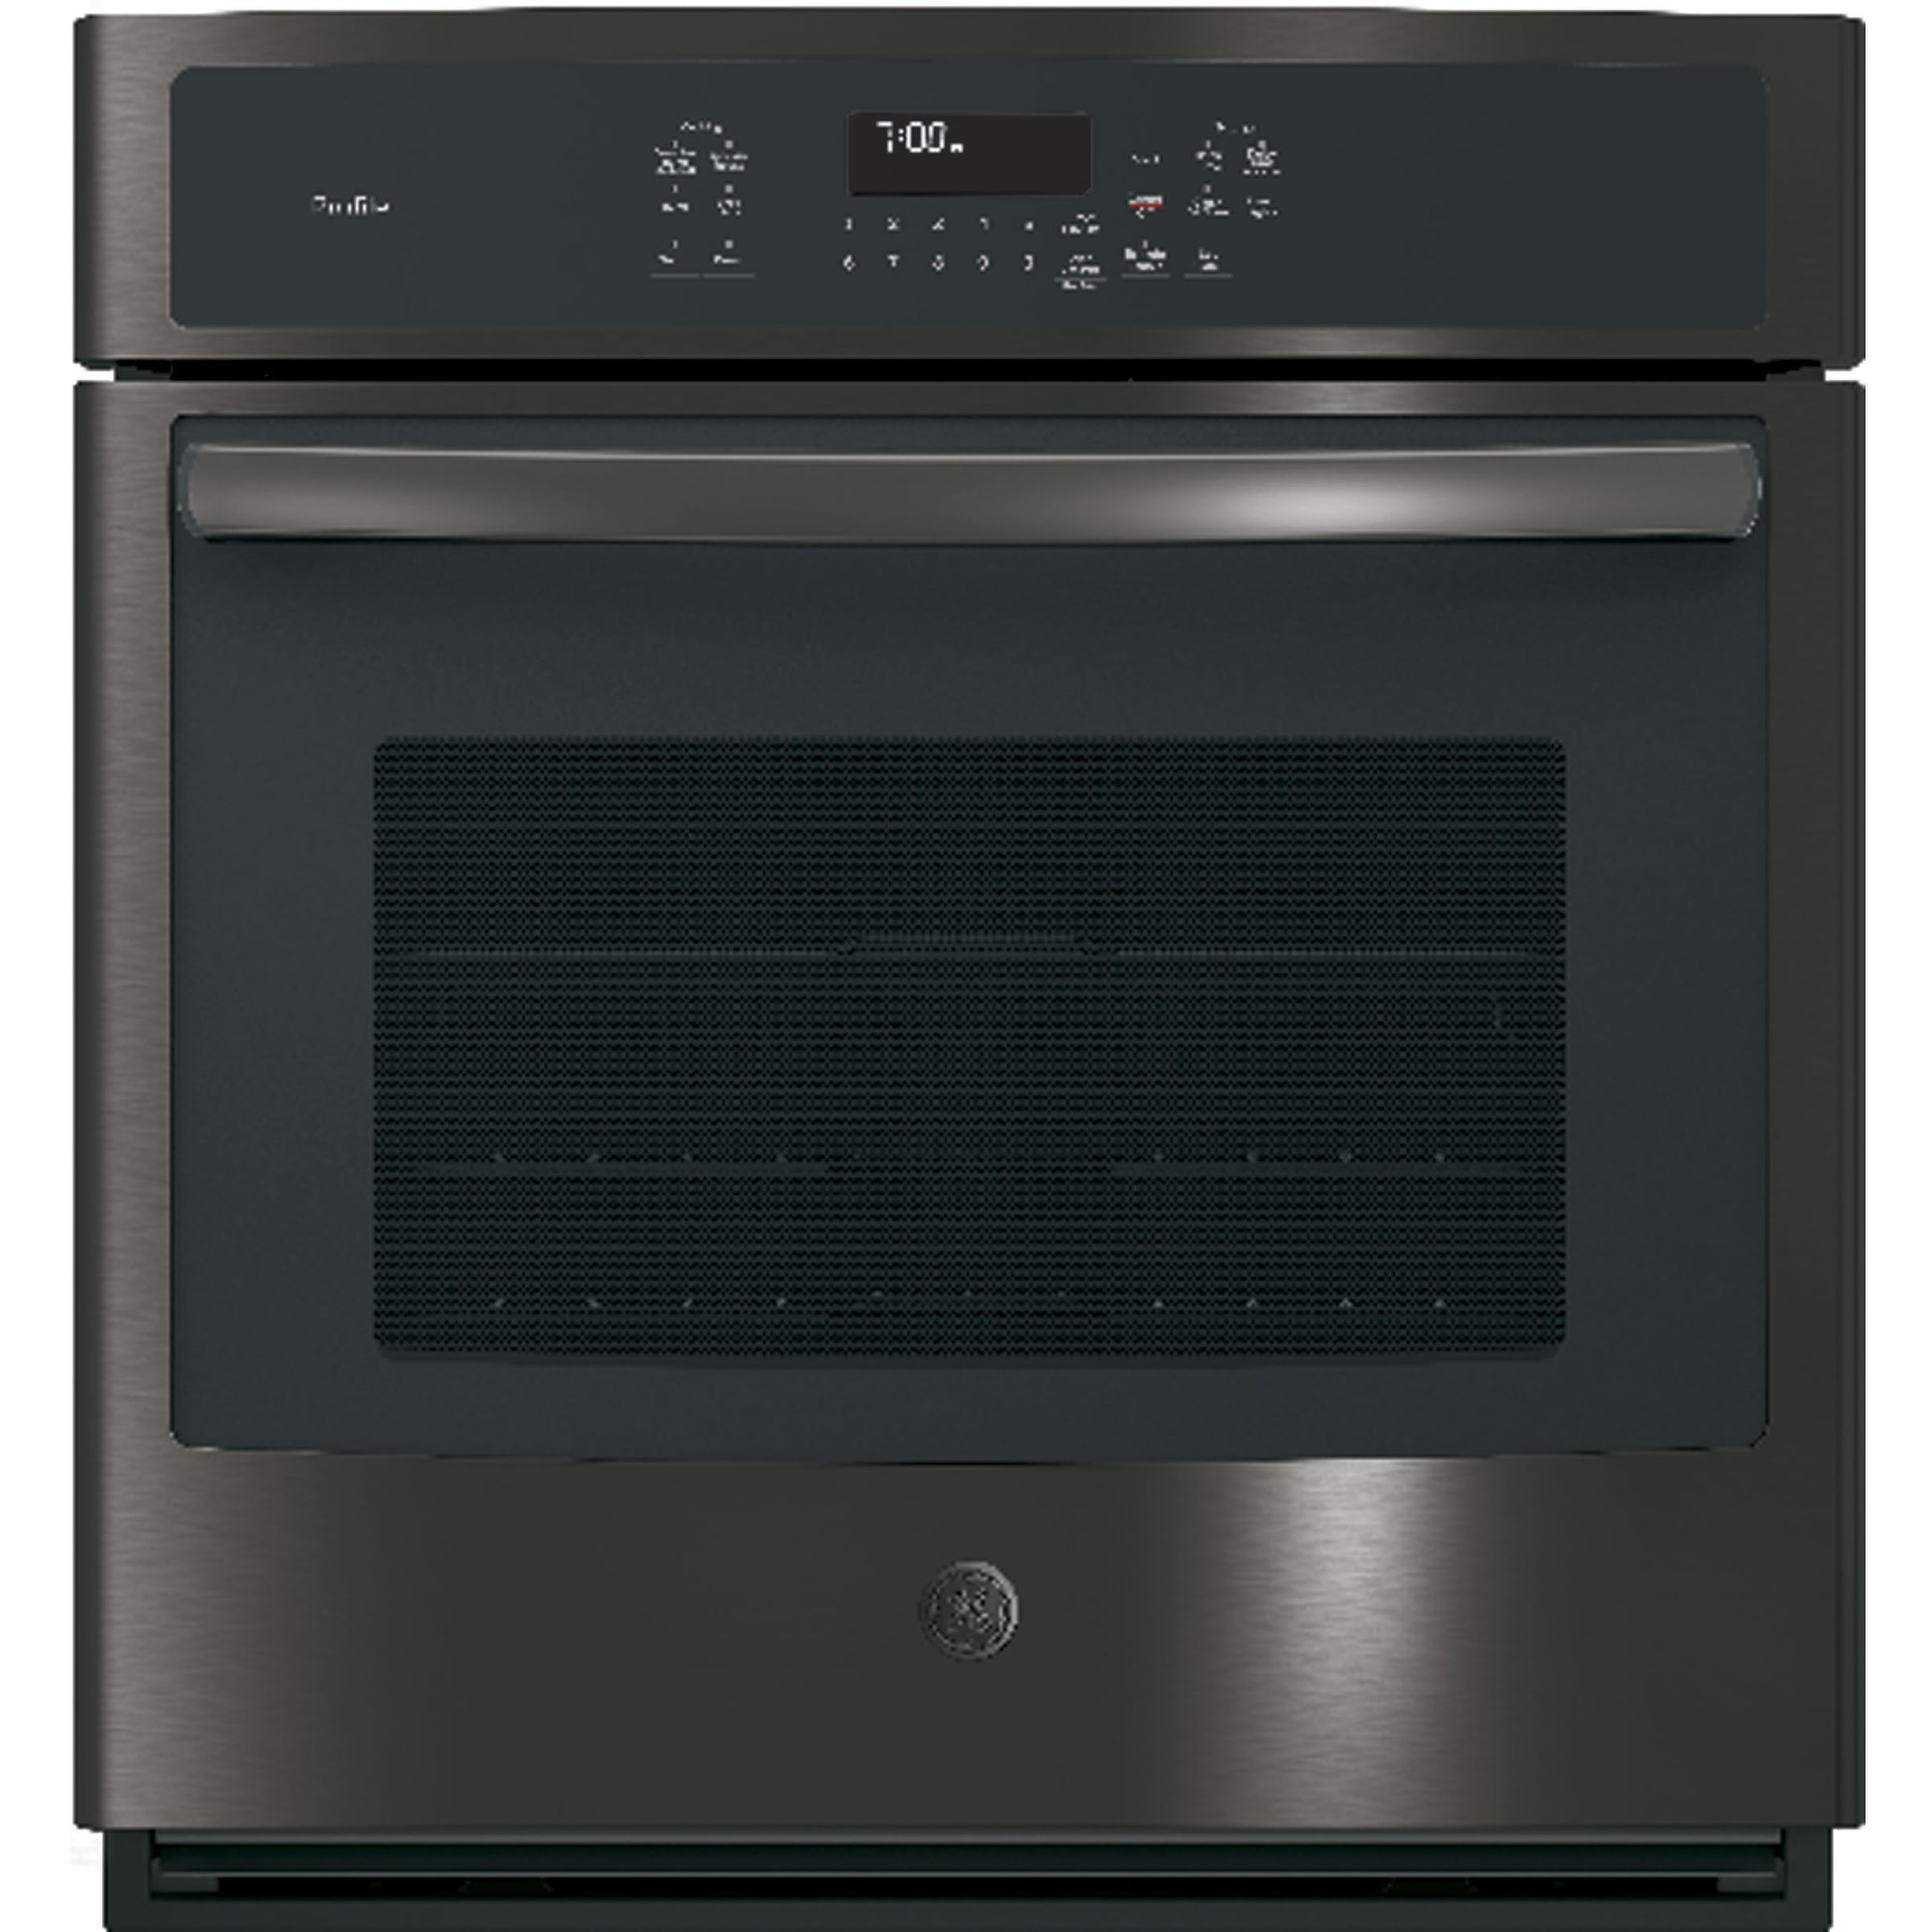 GE Profile Series 27 Inch Built-In Single Convection Wall Oven in Black Stainless Assembled - Black